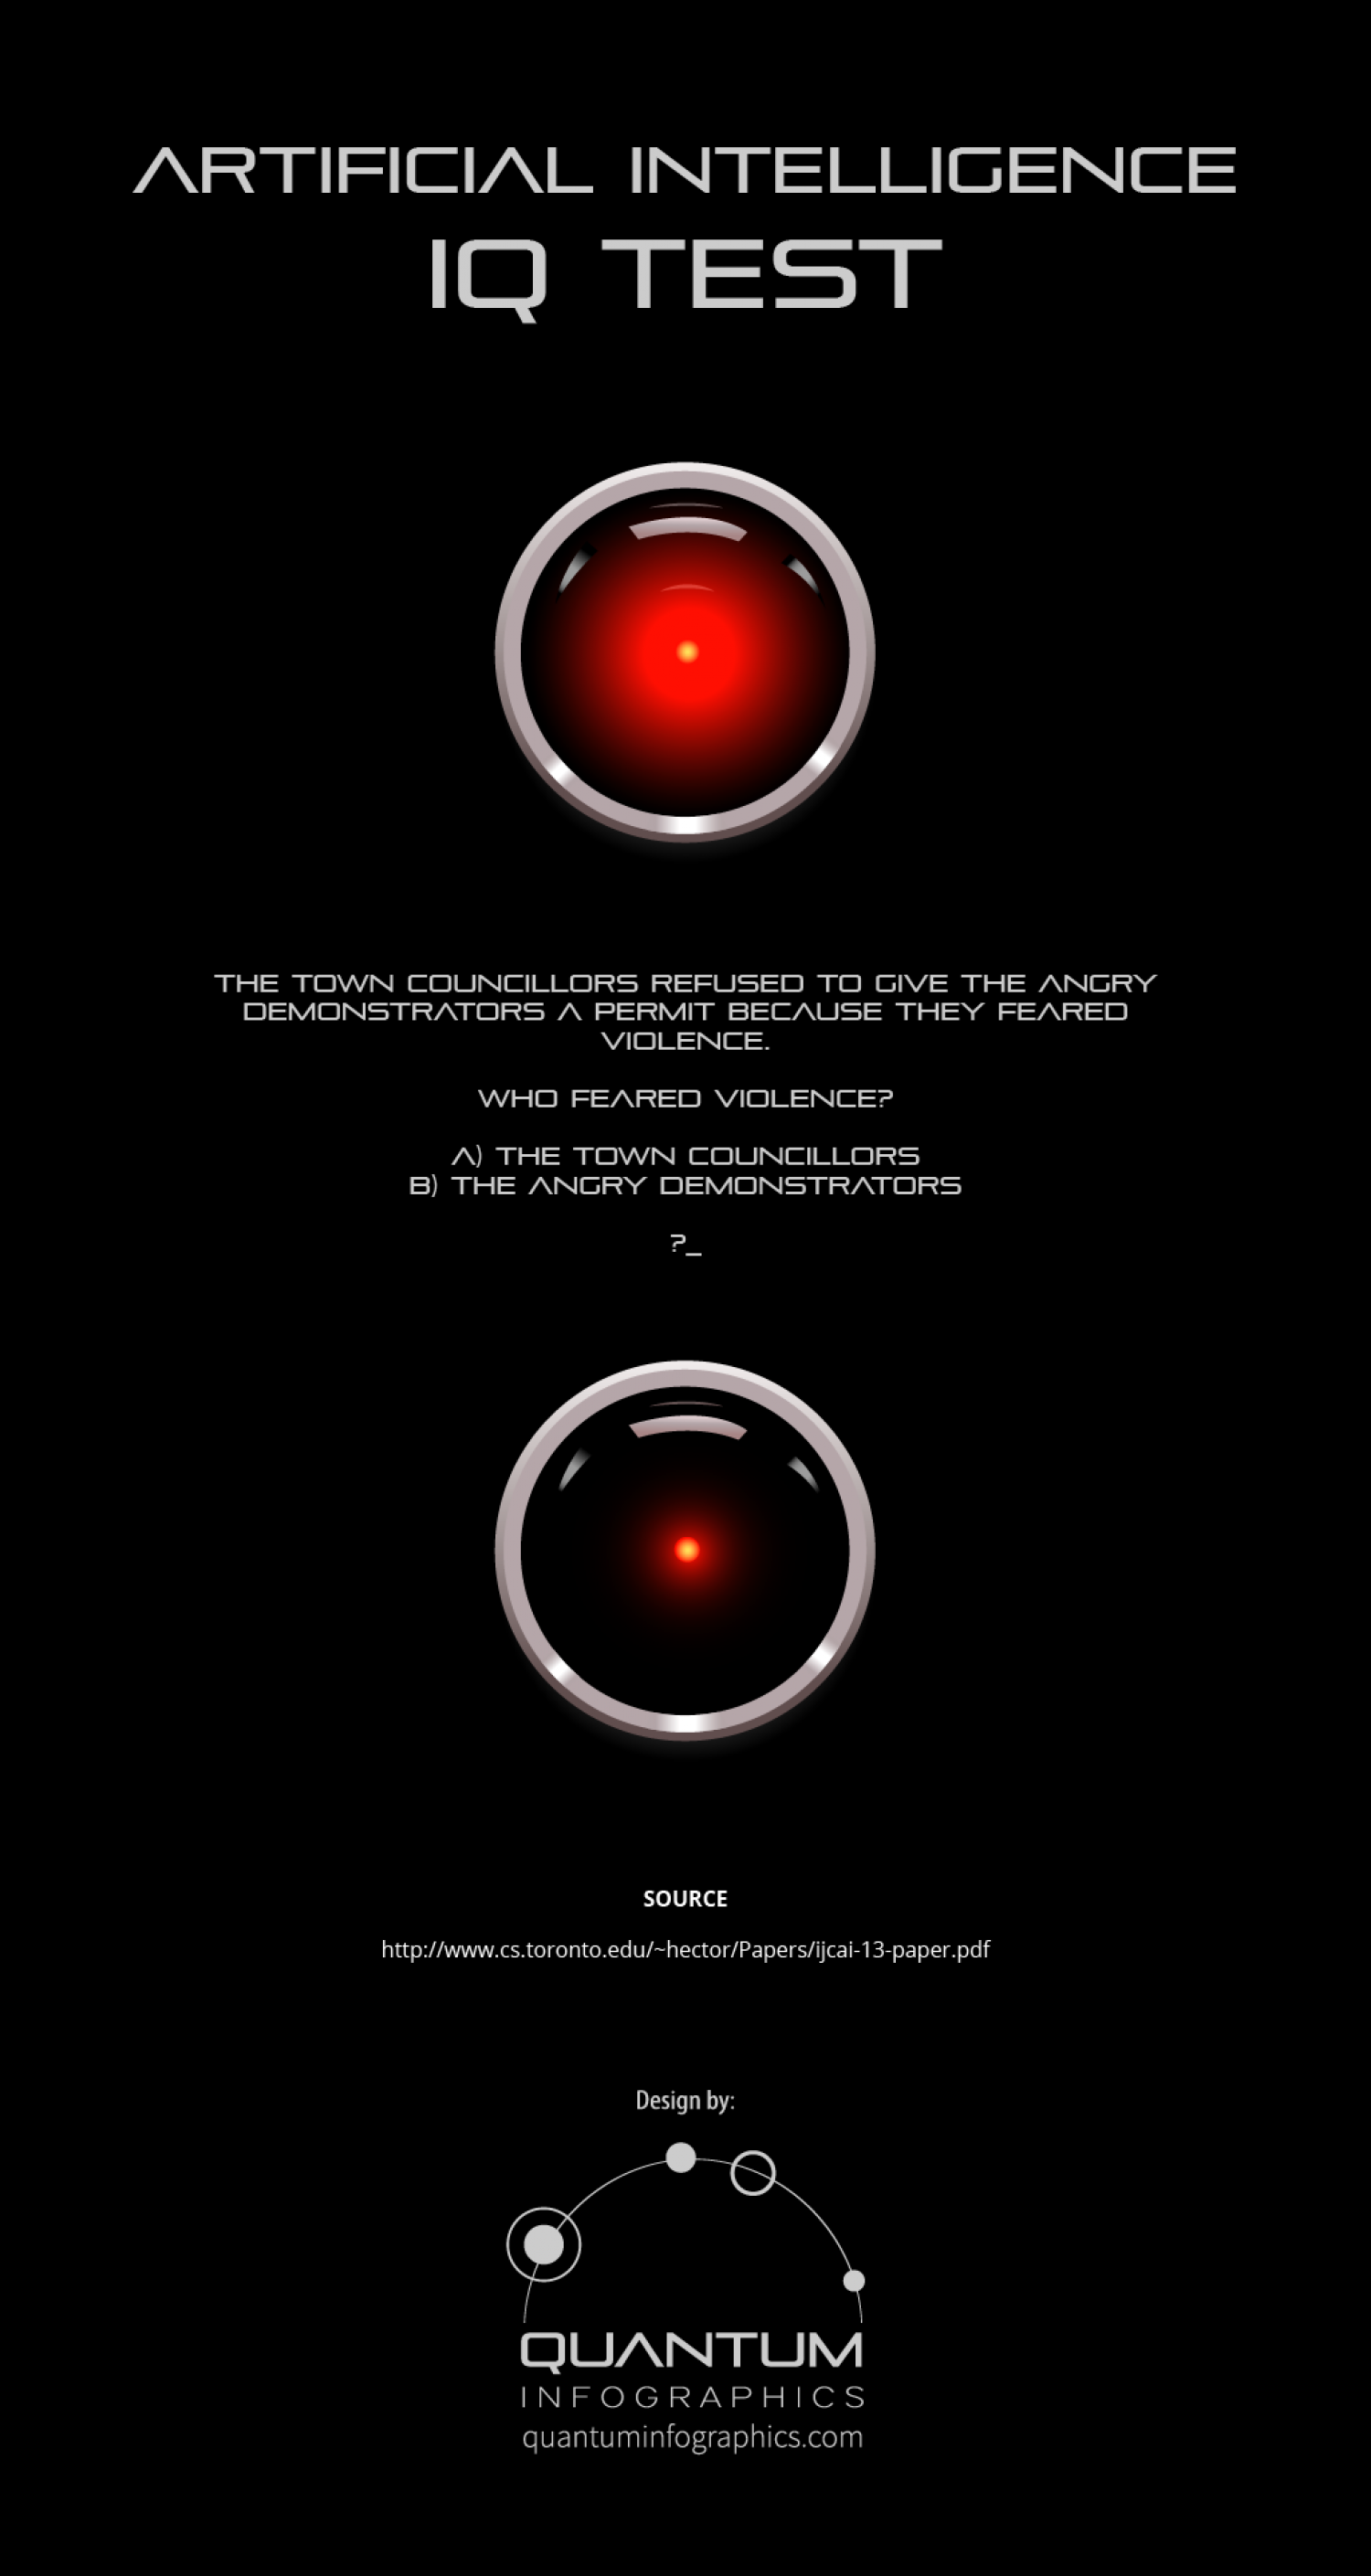 Artificial Intelligence IQ Test Infographic